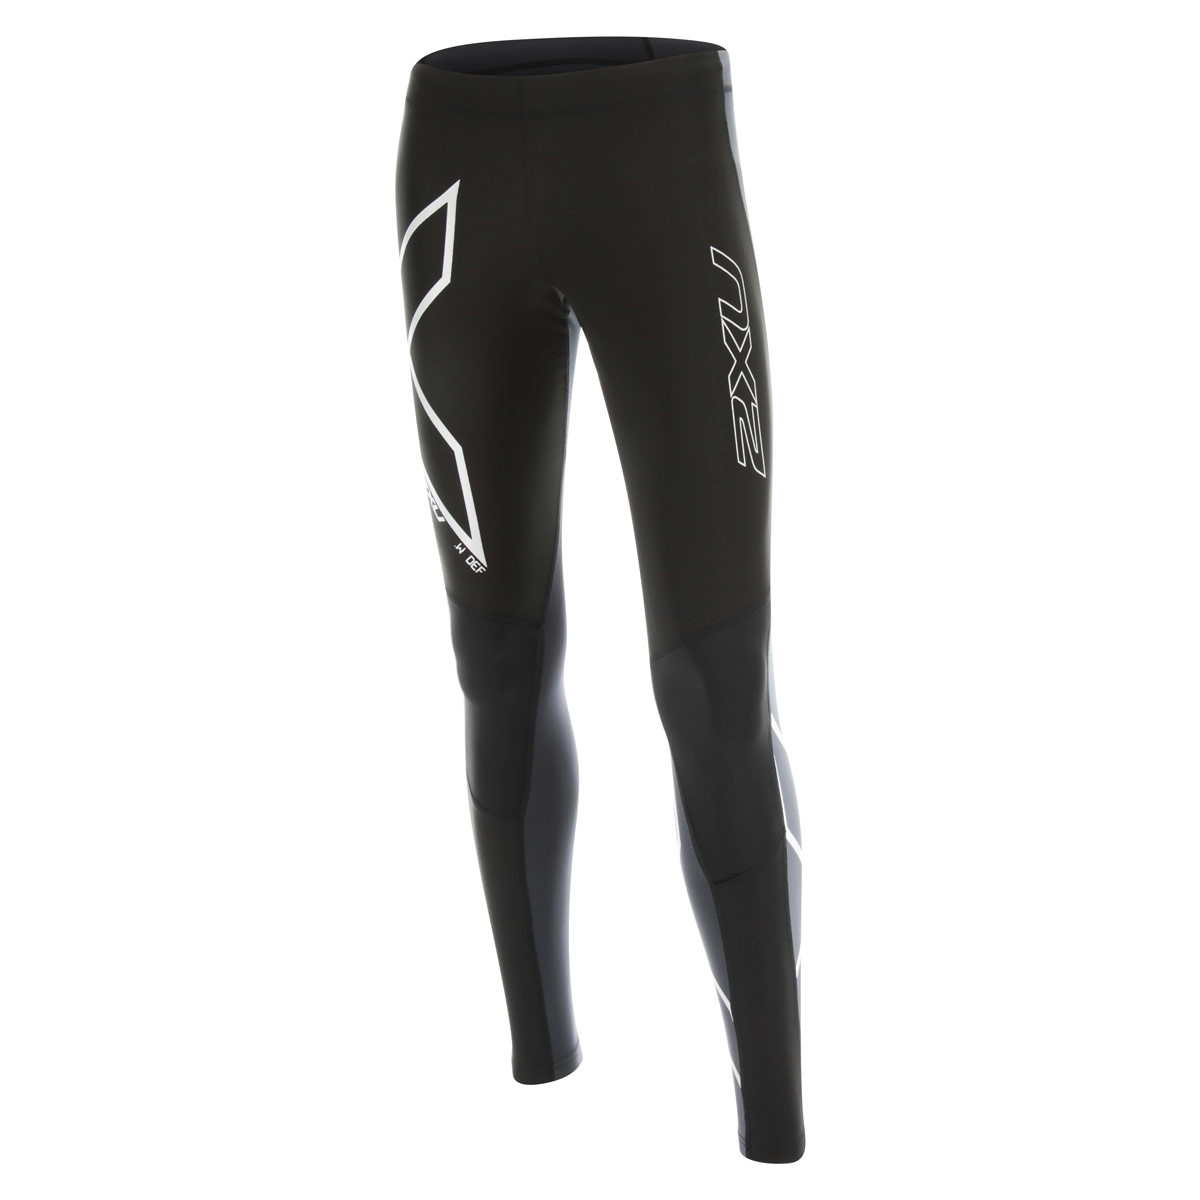 4abbbee196 2XU G:2 Wind Defence Thermal Compression - Running trousers for Women -  Black | 21RUN